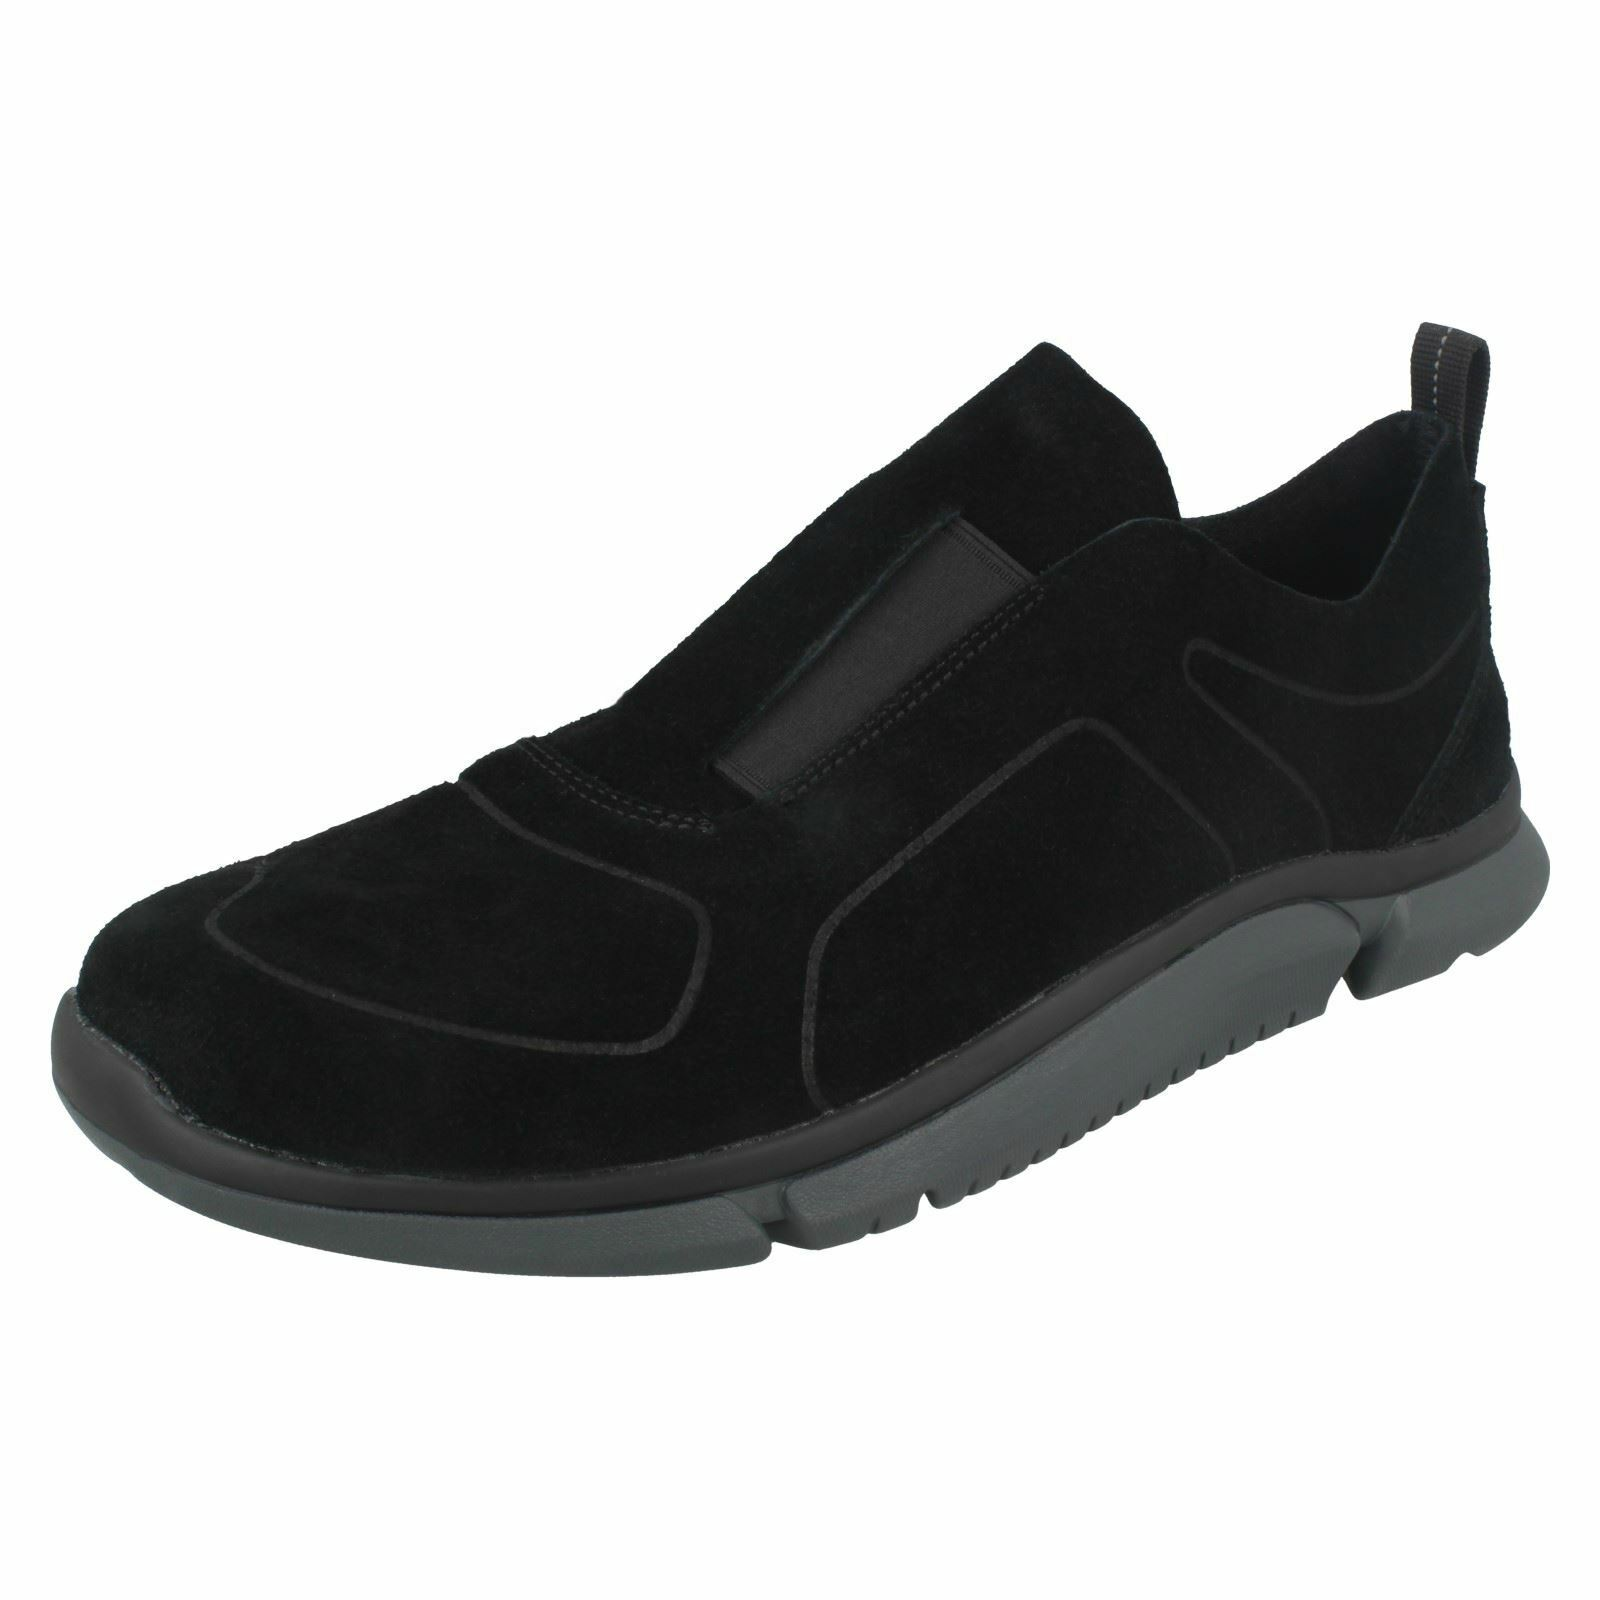 Clarks Clarks Clarks Mens Casual Shoes - Triken Easy a3cd8b